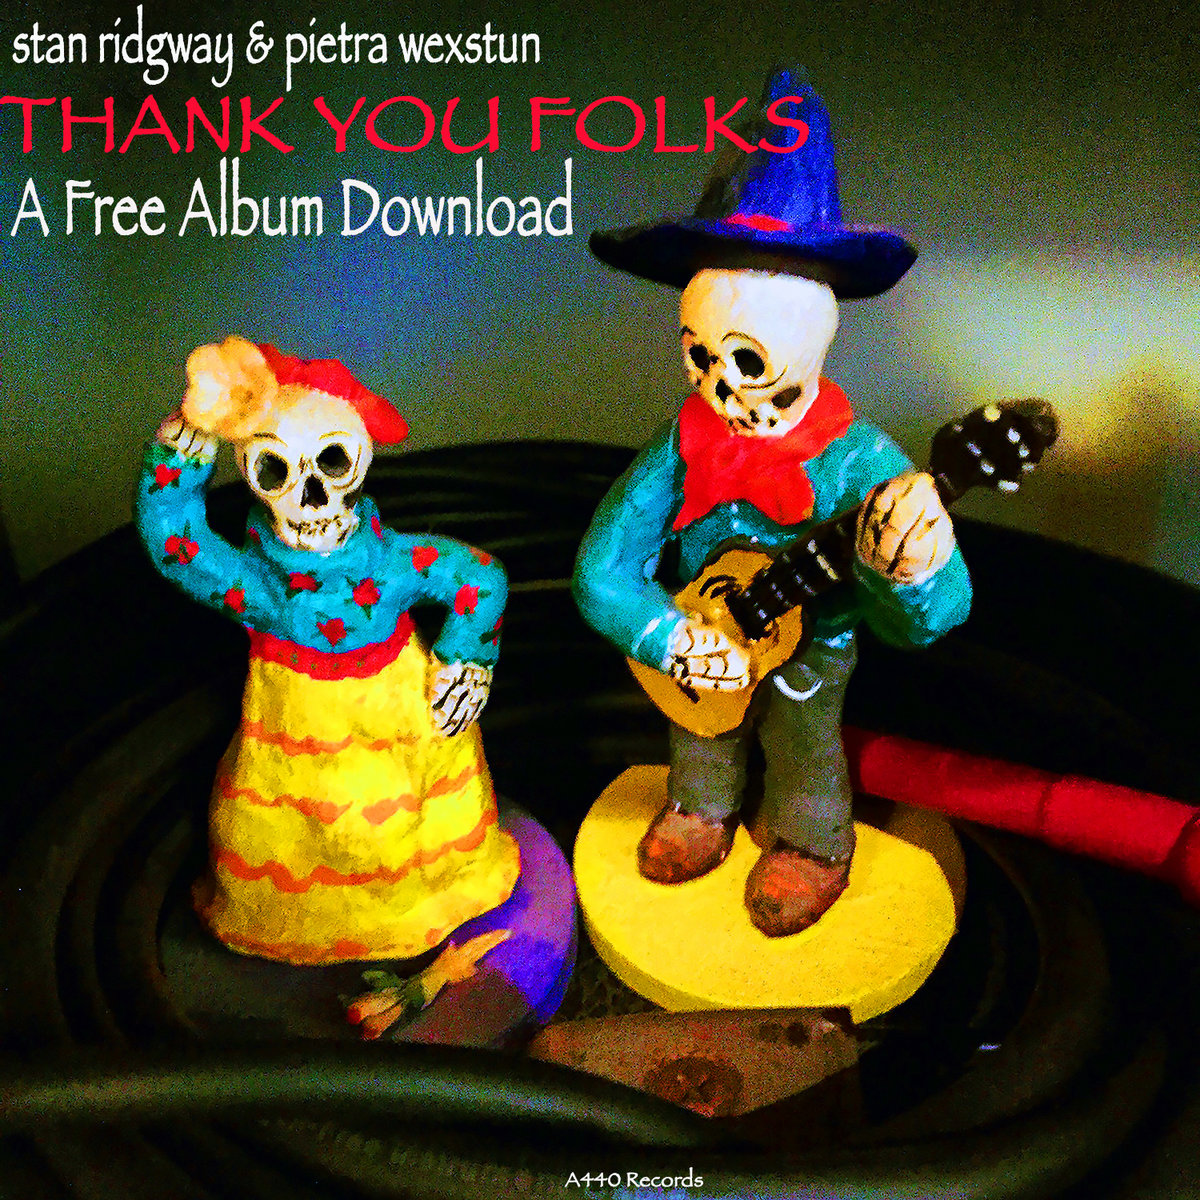 thank you folks an almost free download 10 song album stan